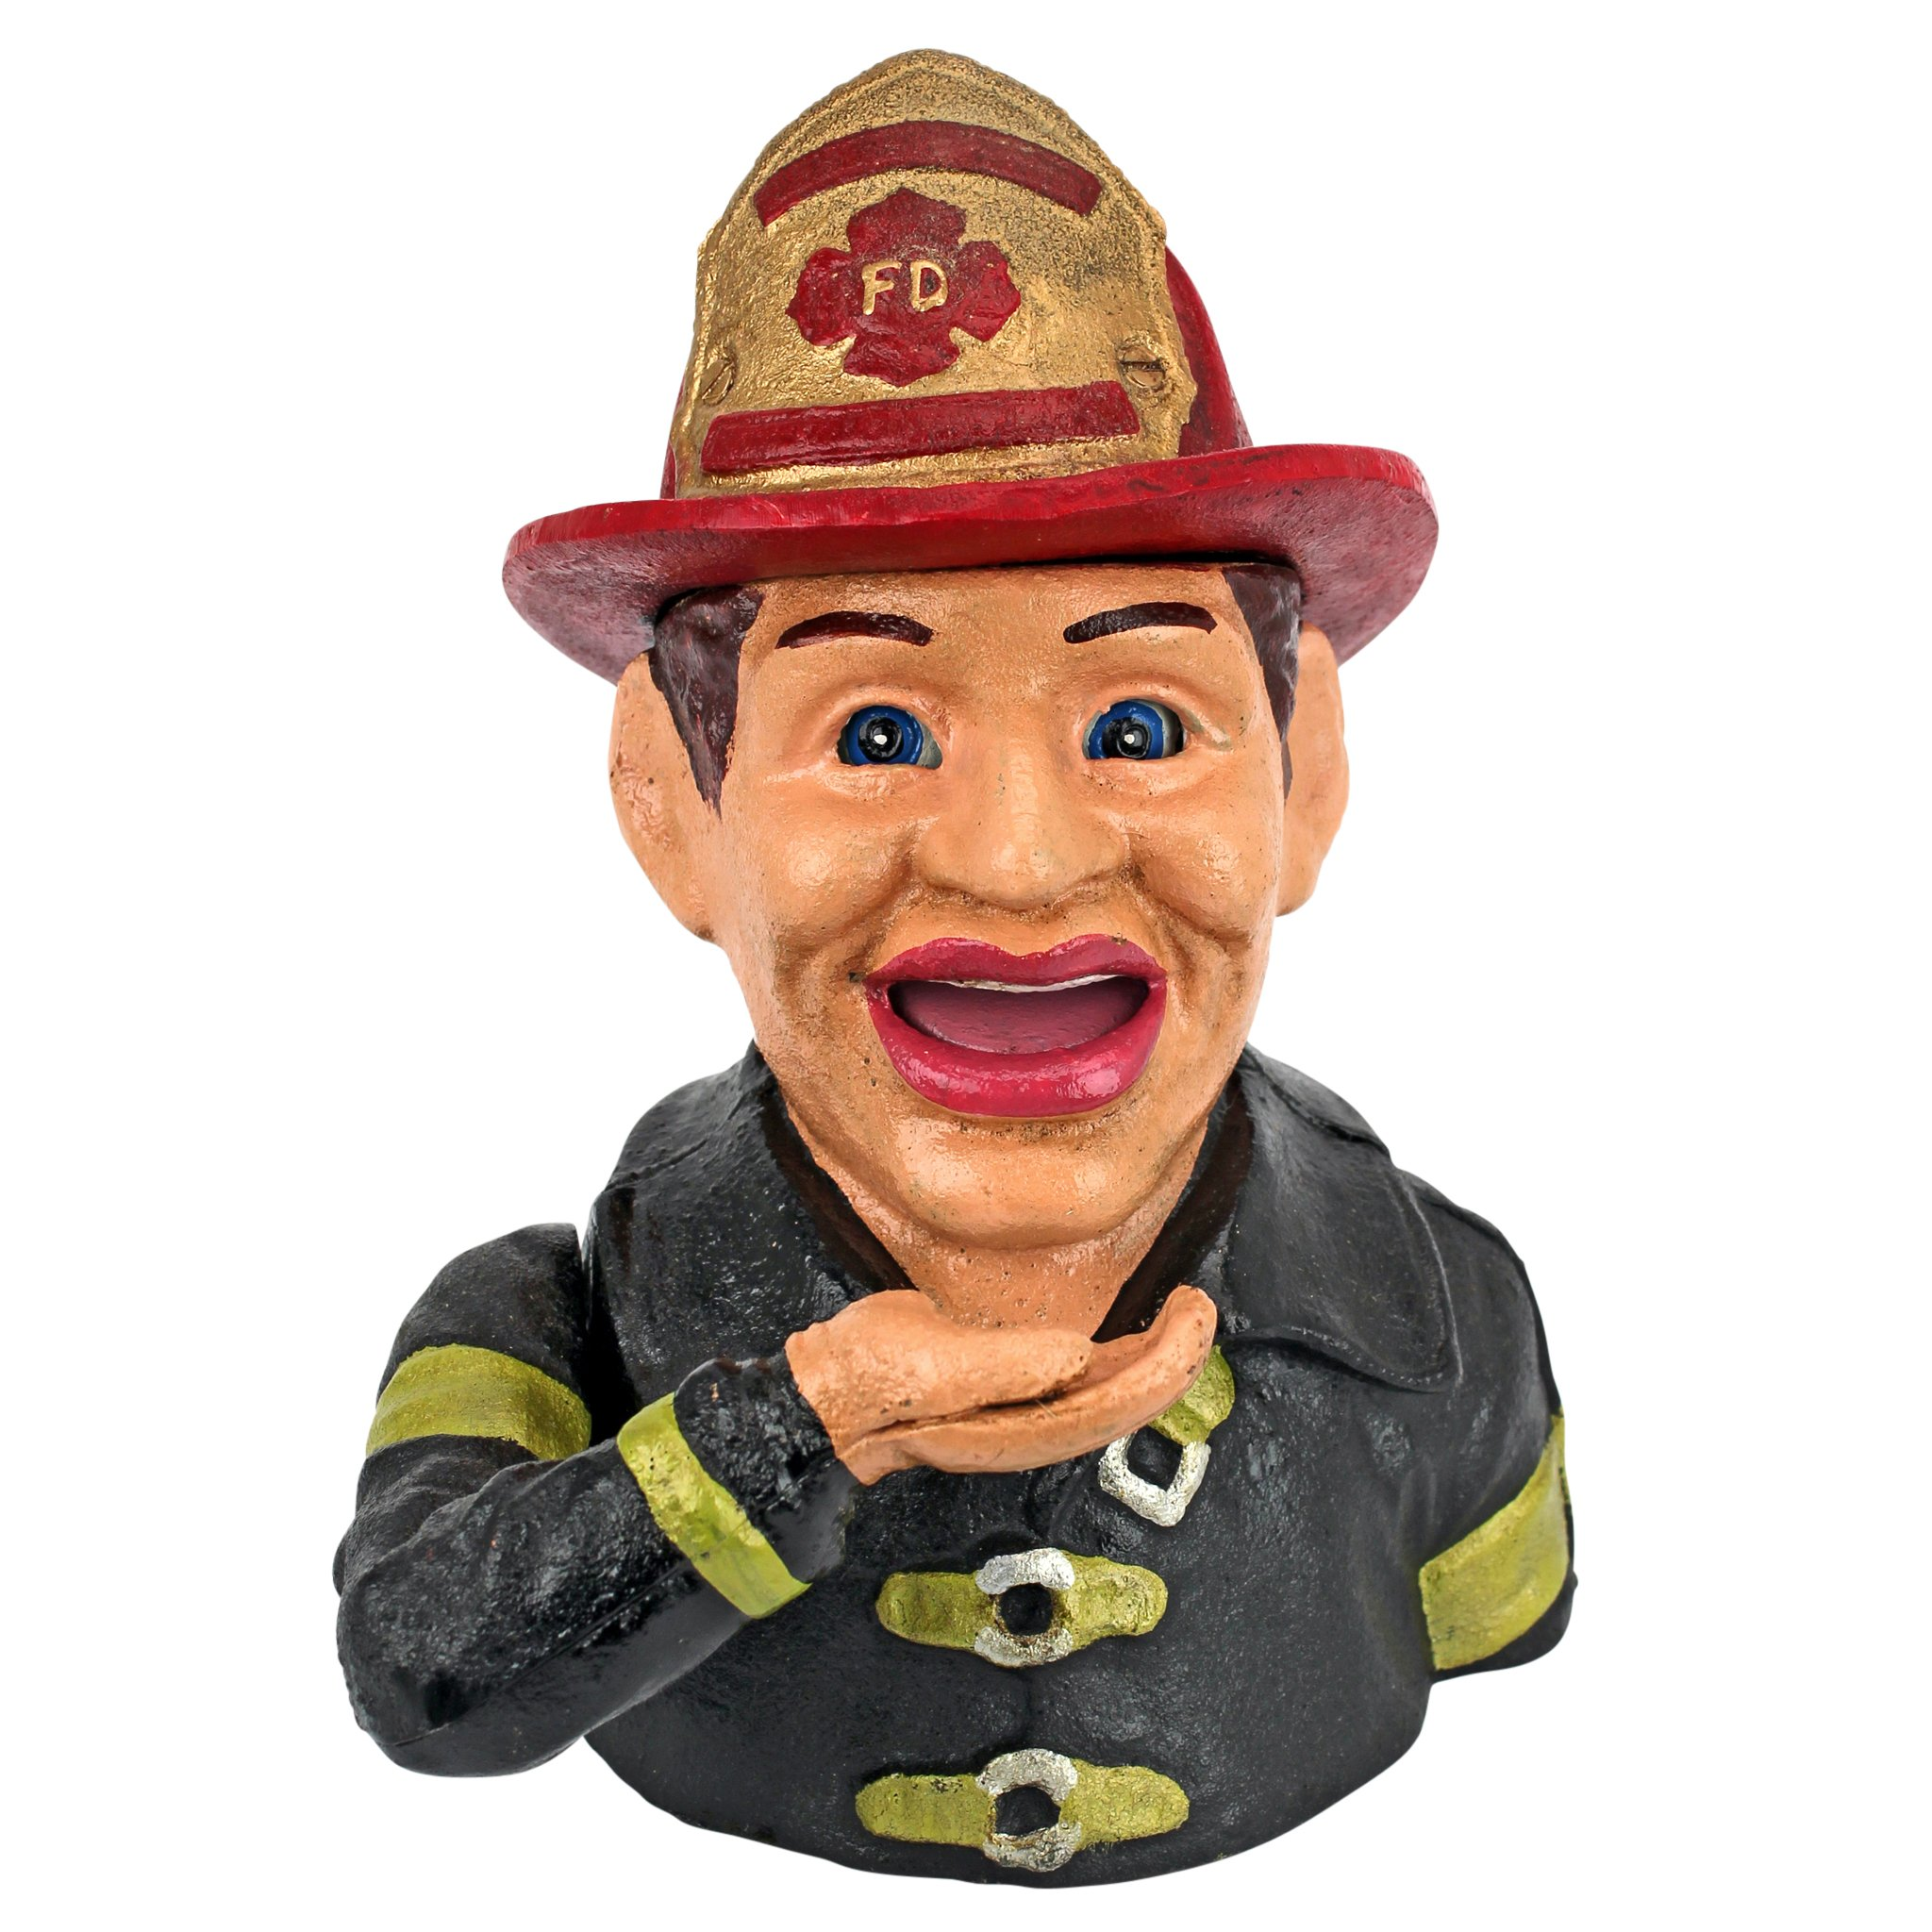 Design Toscano Fireman's Fund Die-Cast Iron Mechanical Coin Bank by Design Toscano (Image #2)